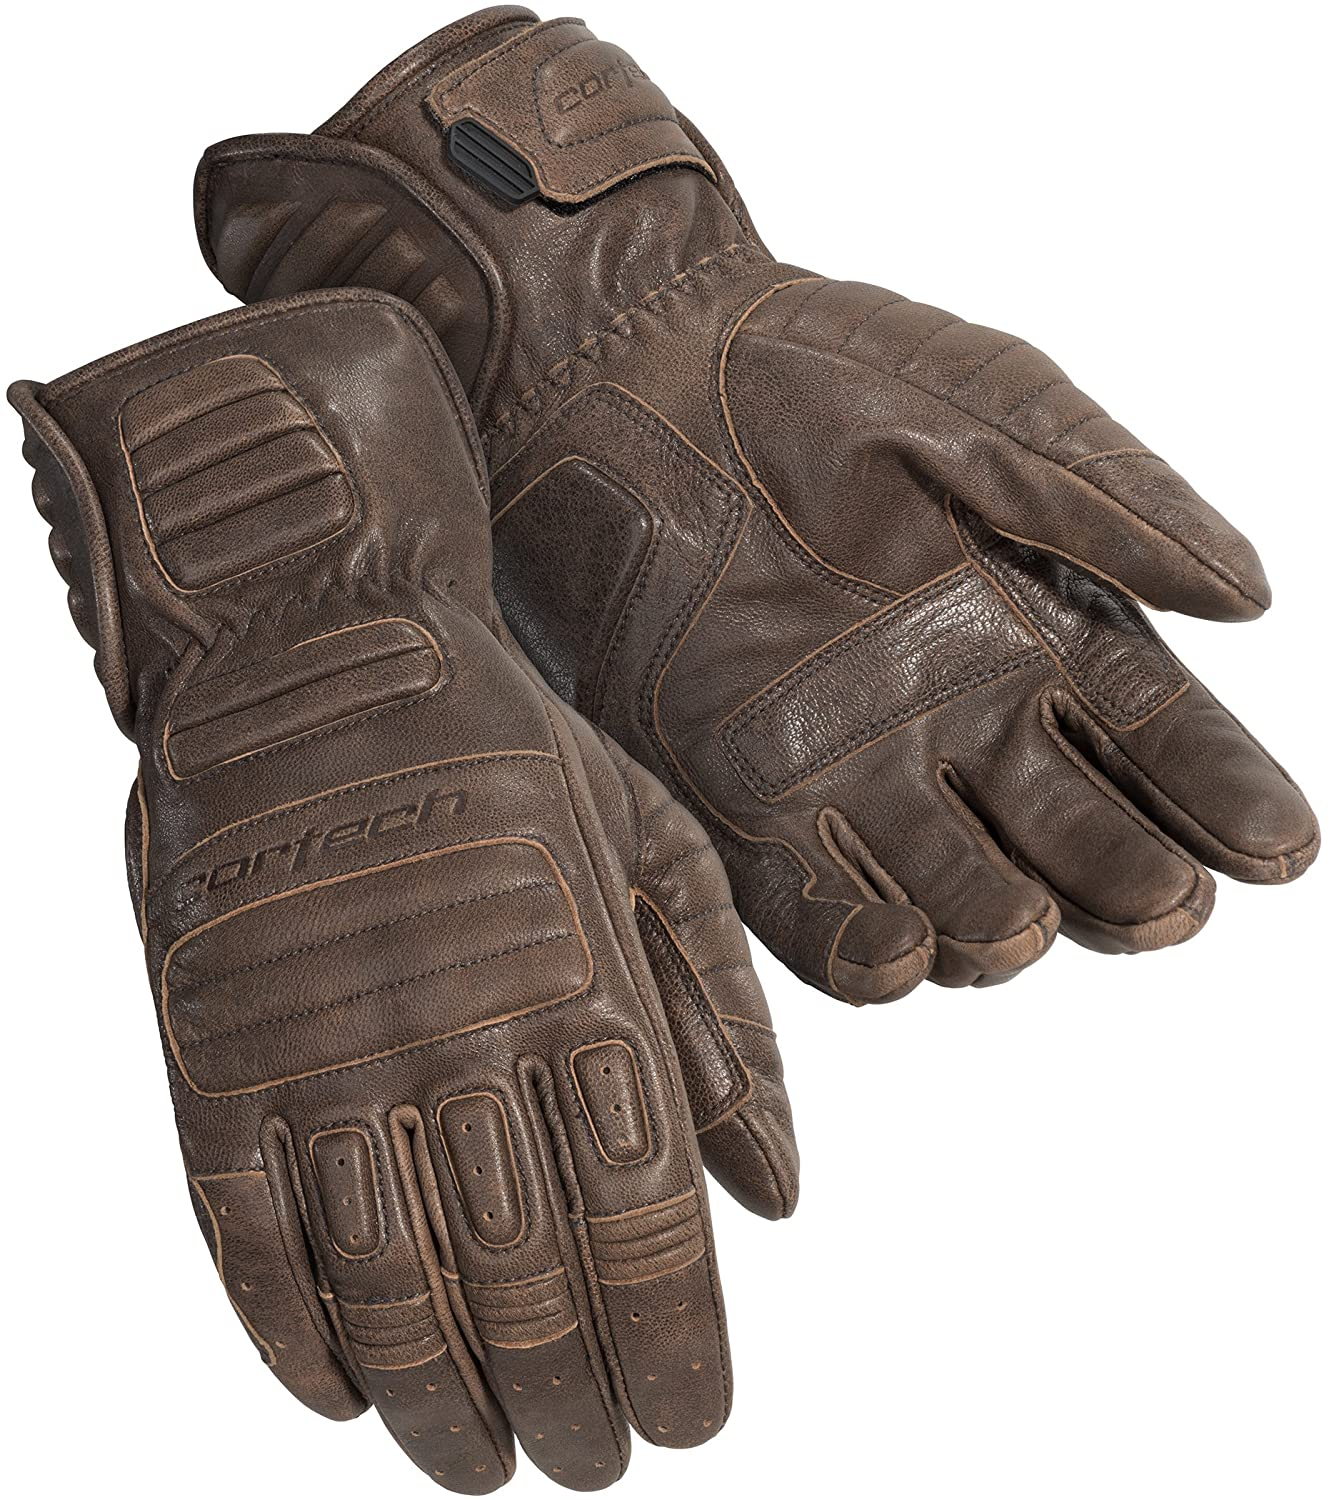 Black, Large Cortech Mens Roughneck Leather Motorcycle Gloves 8337-0125-06